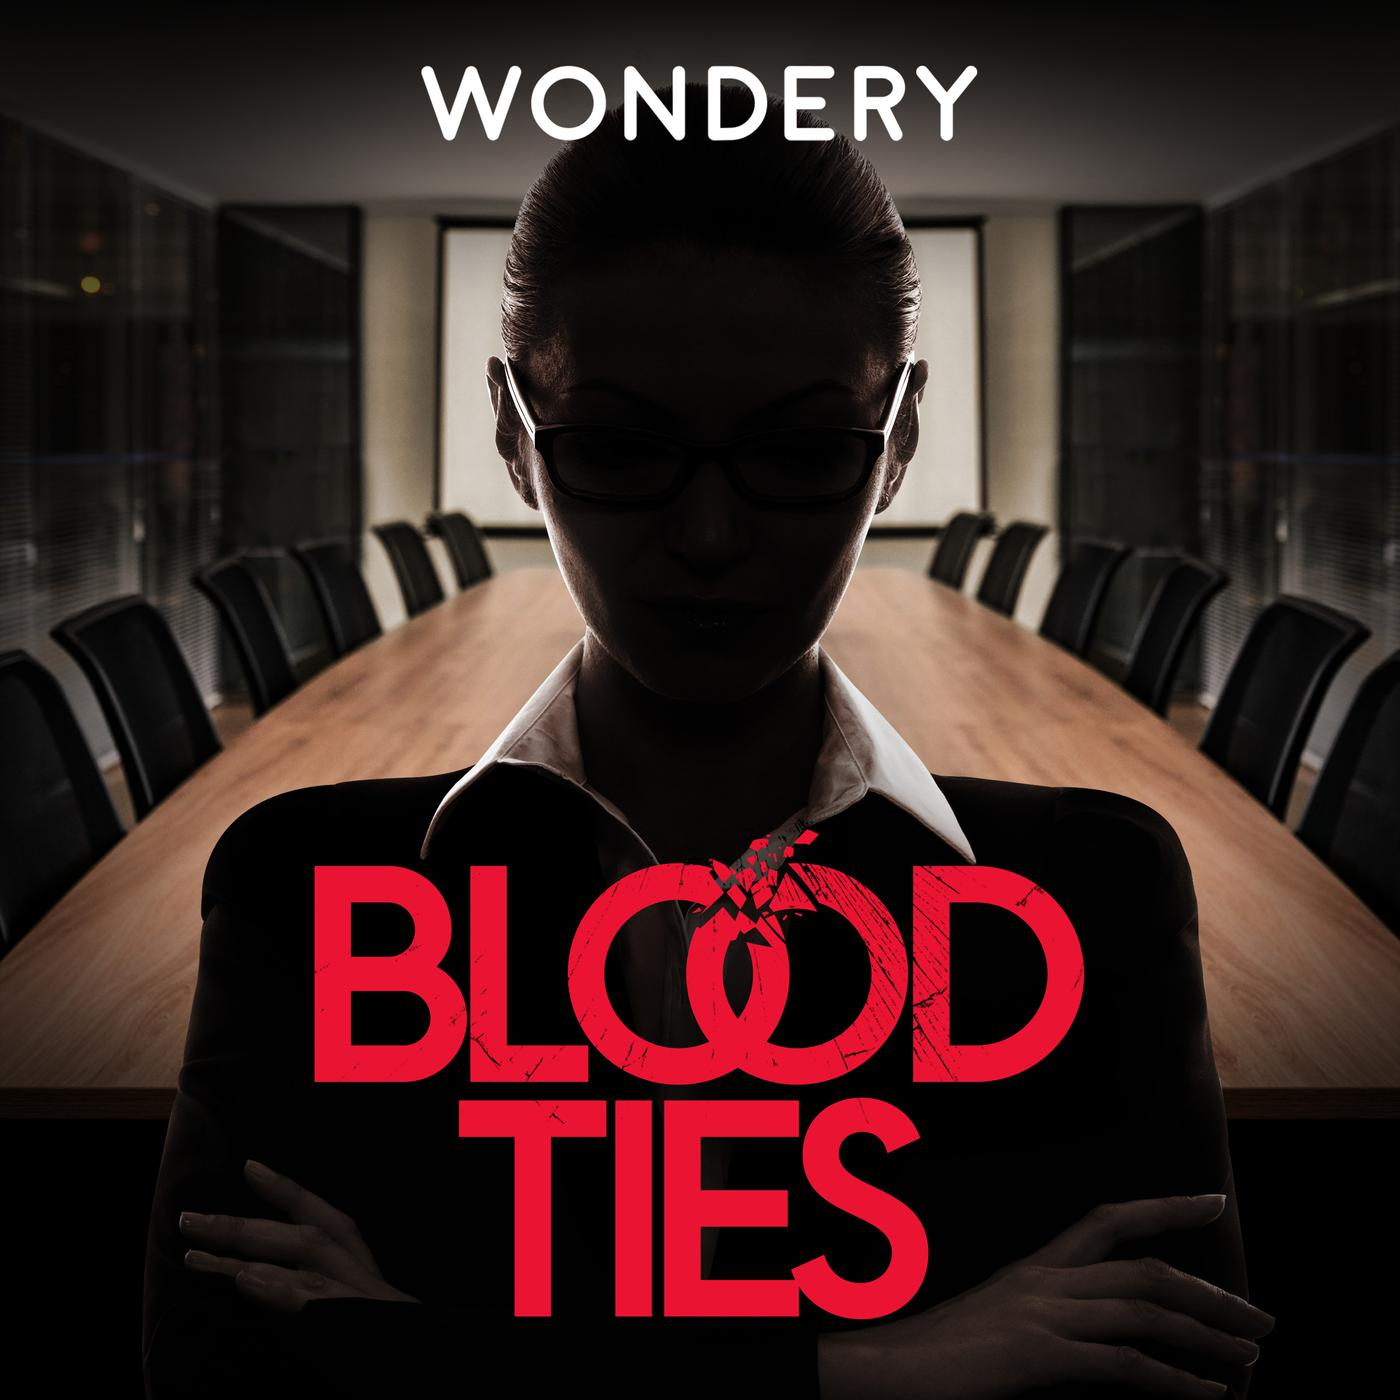 Cool podcasts from Wondery